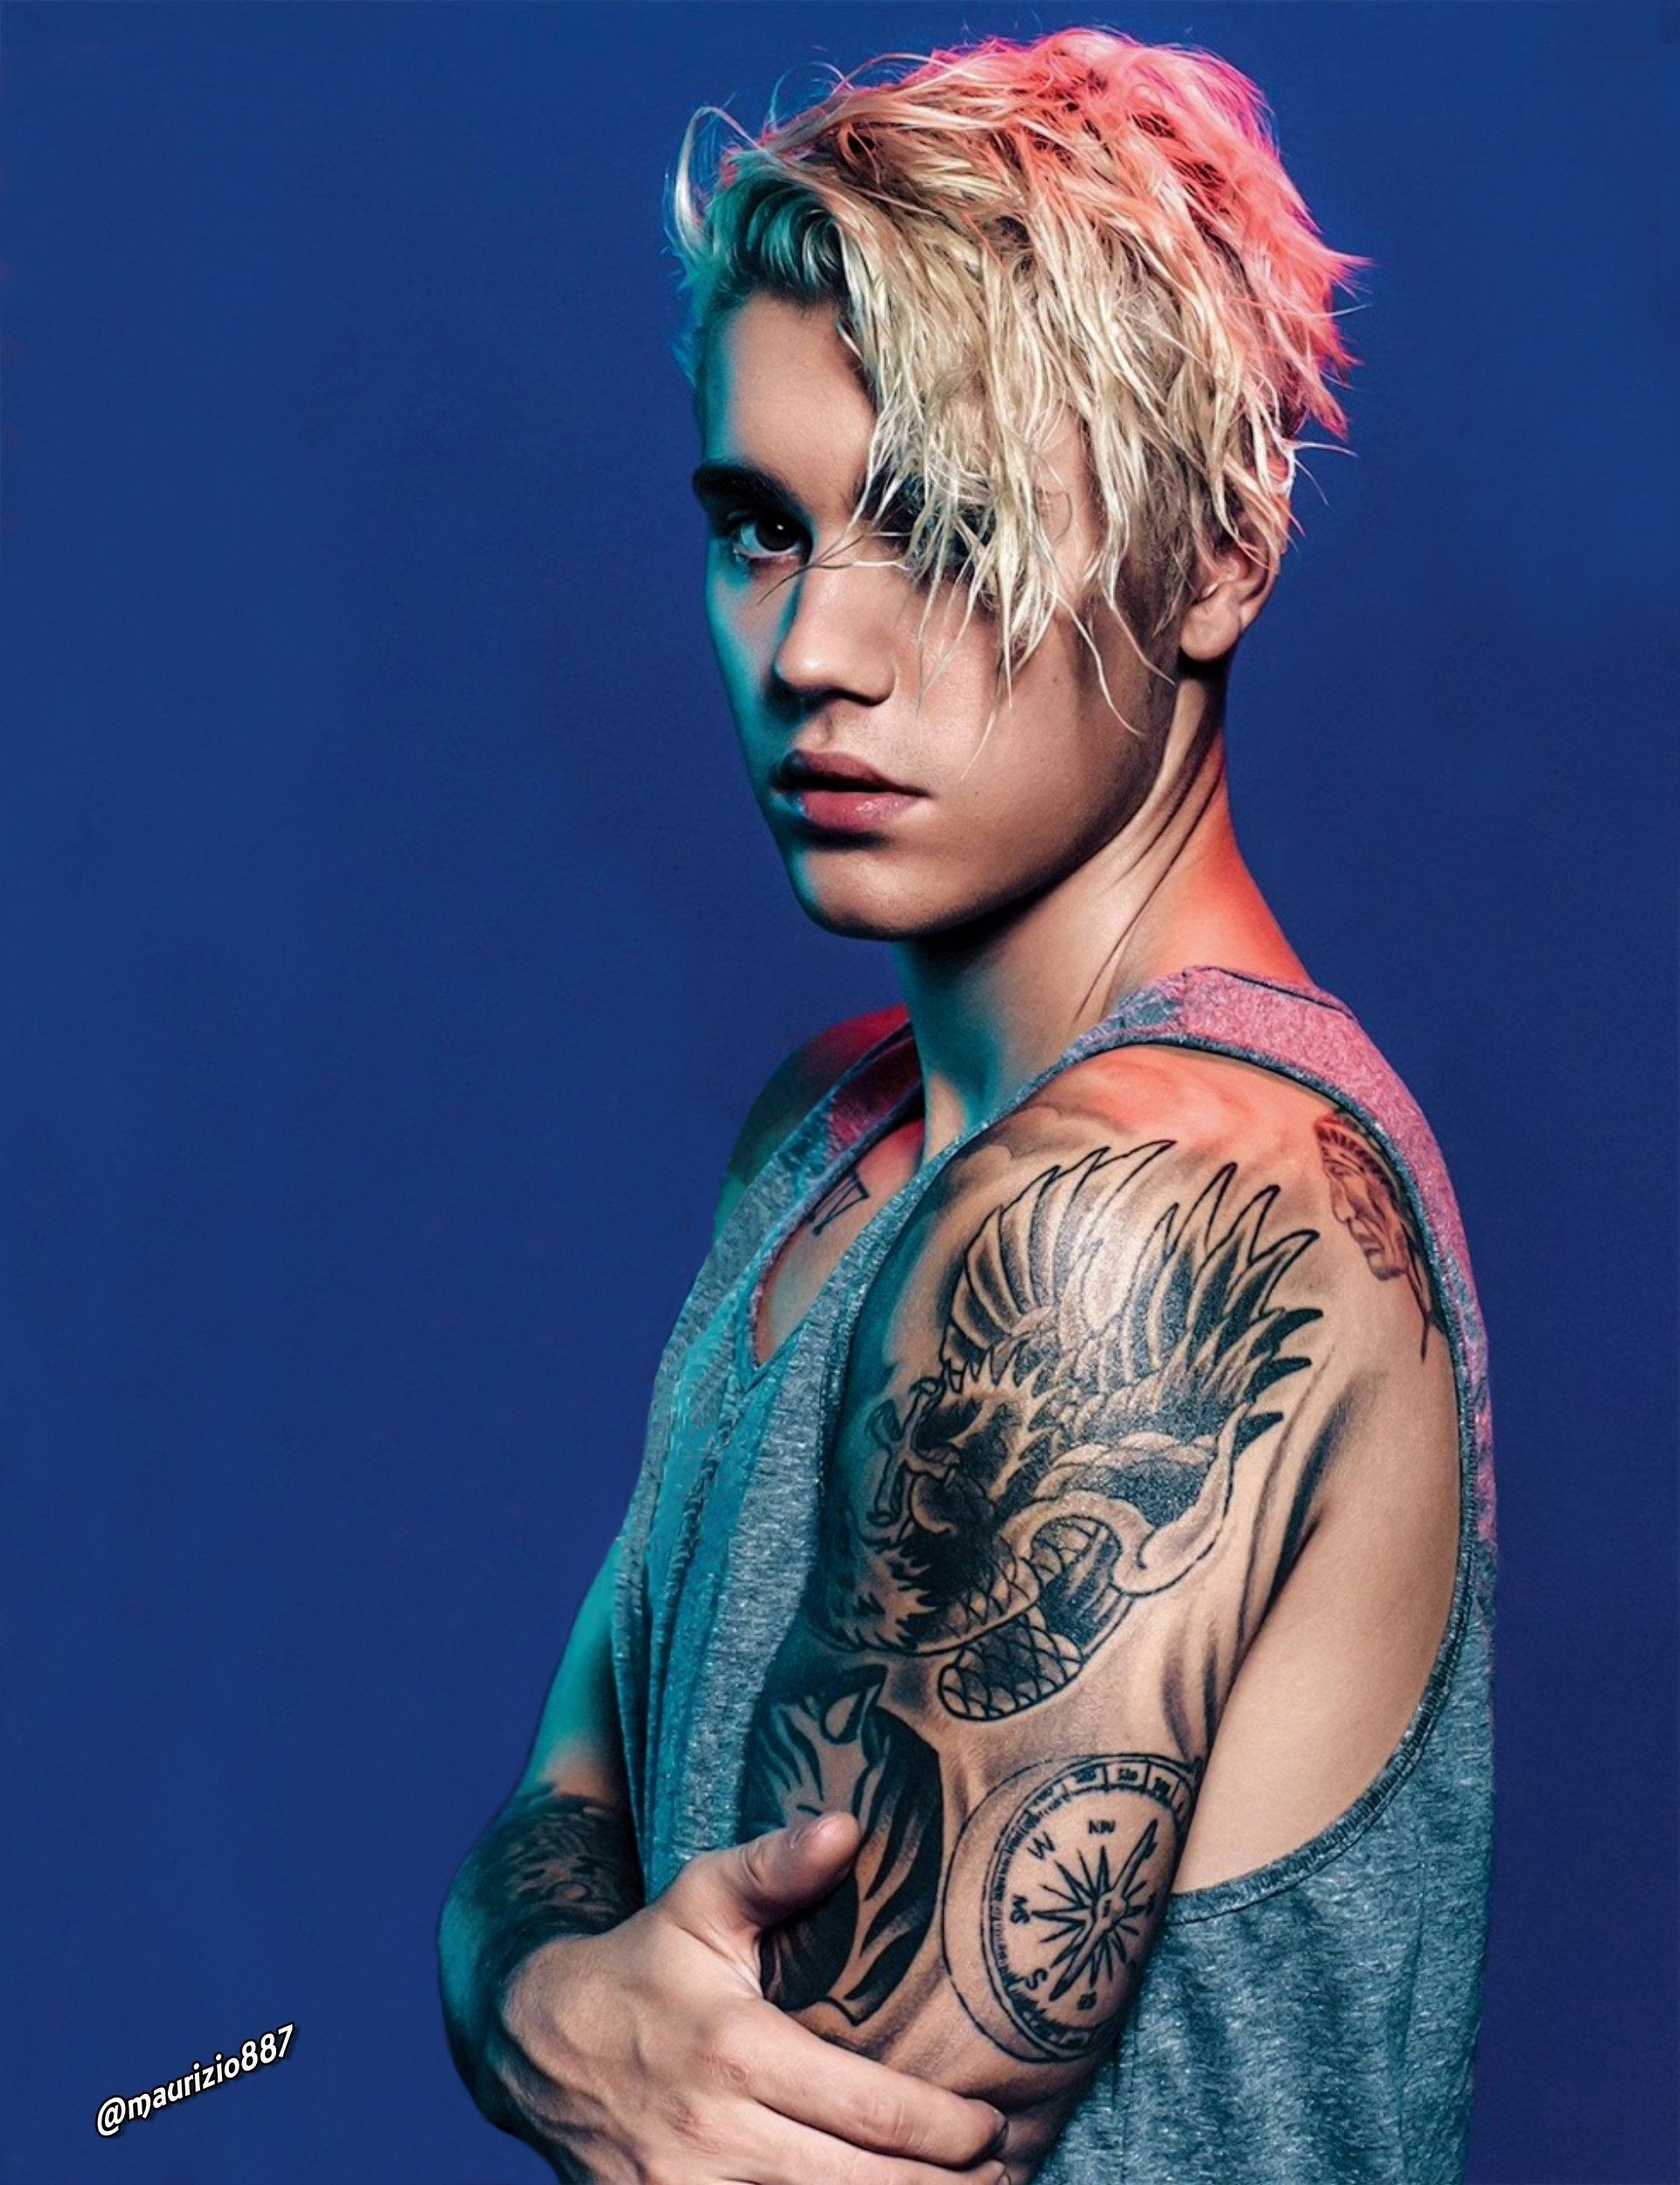 wallpapers of justin bieber 2018 60 images